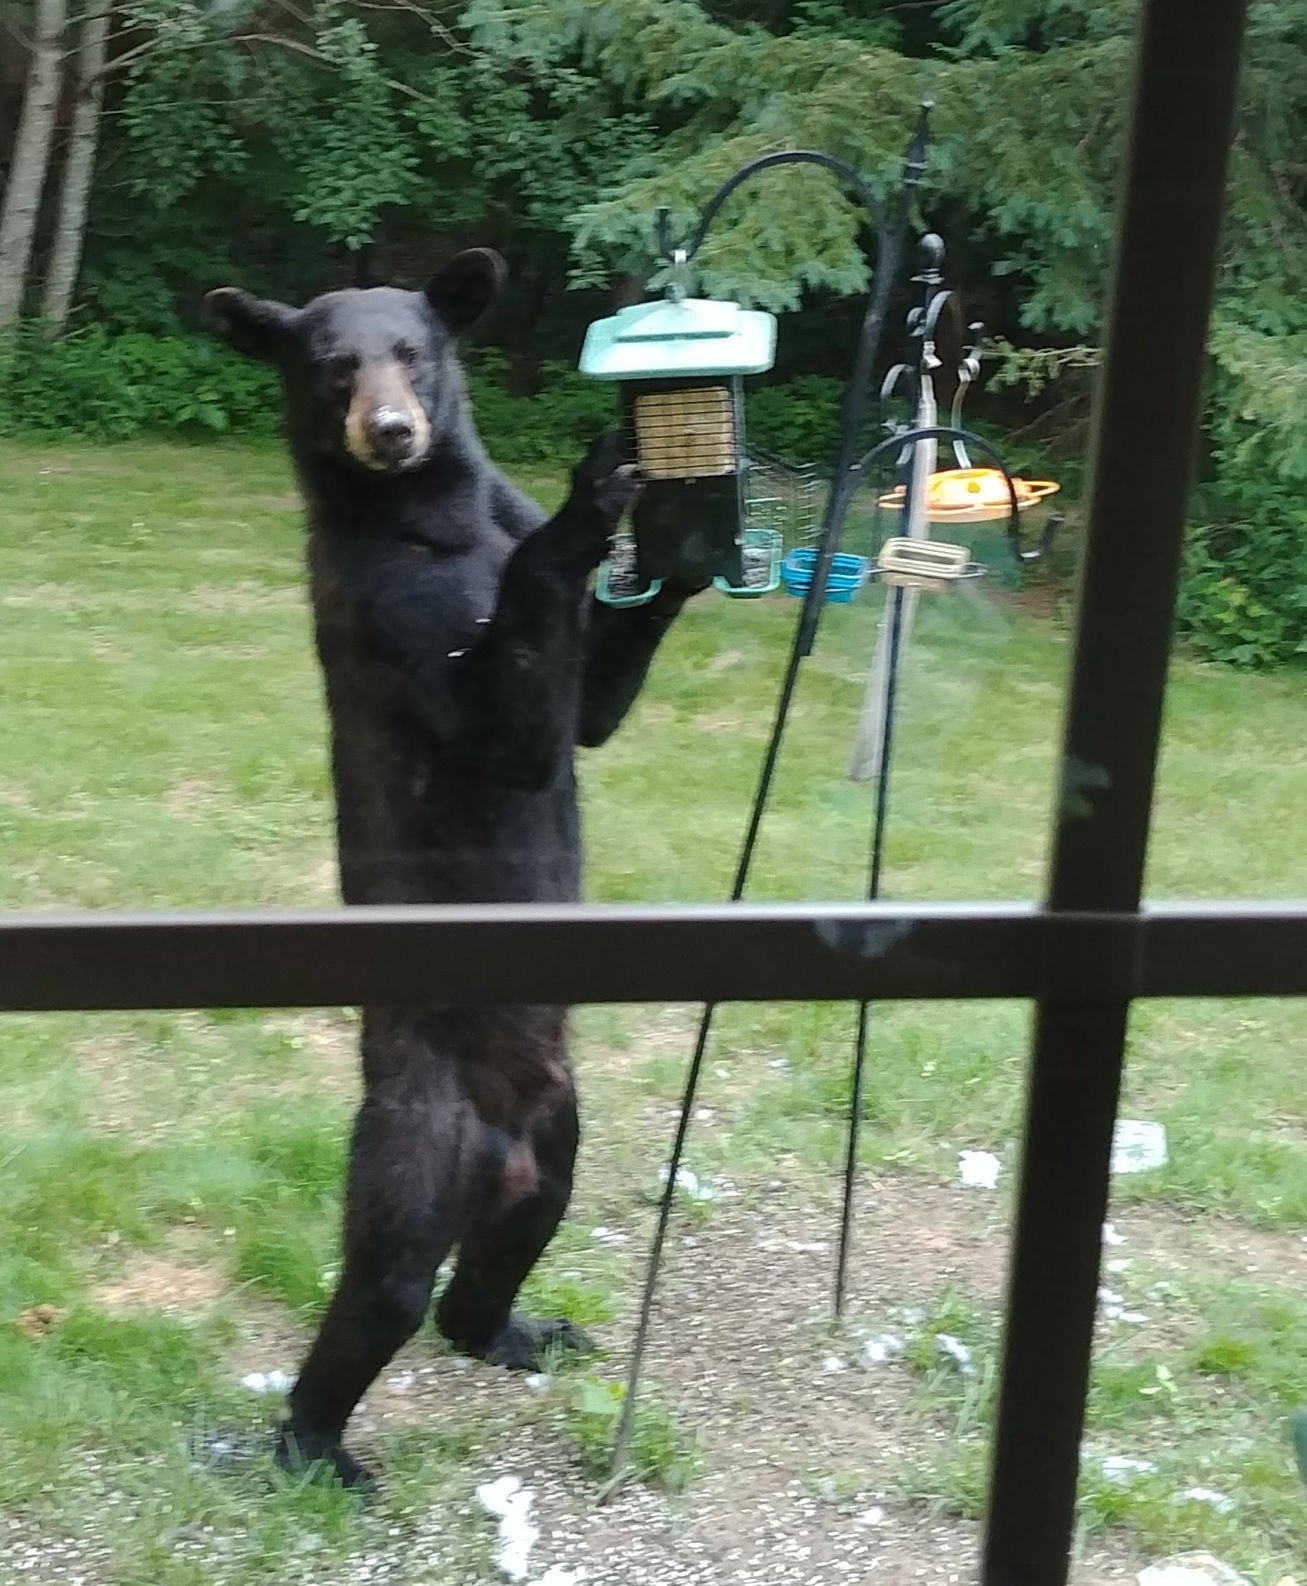 How to get rid of a bear in the garden Looking for ways 8